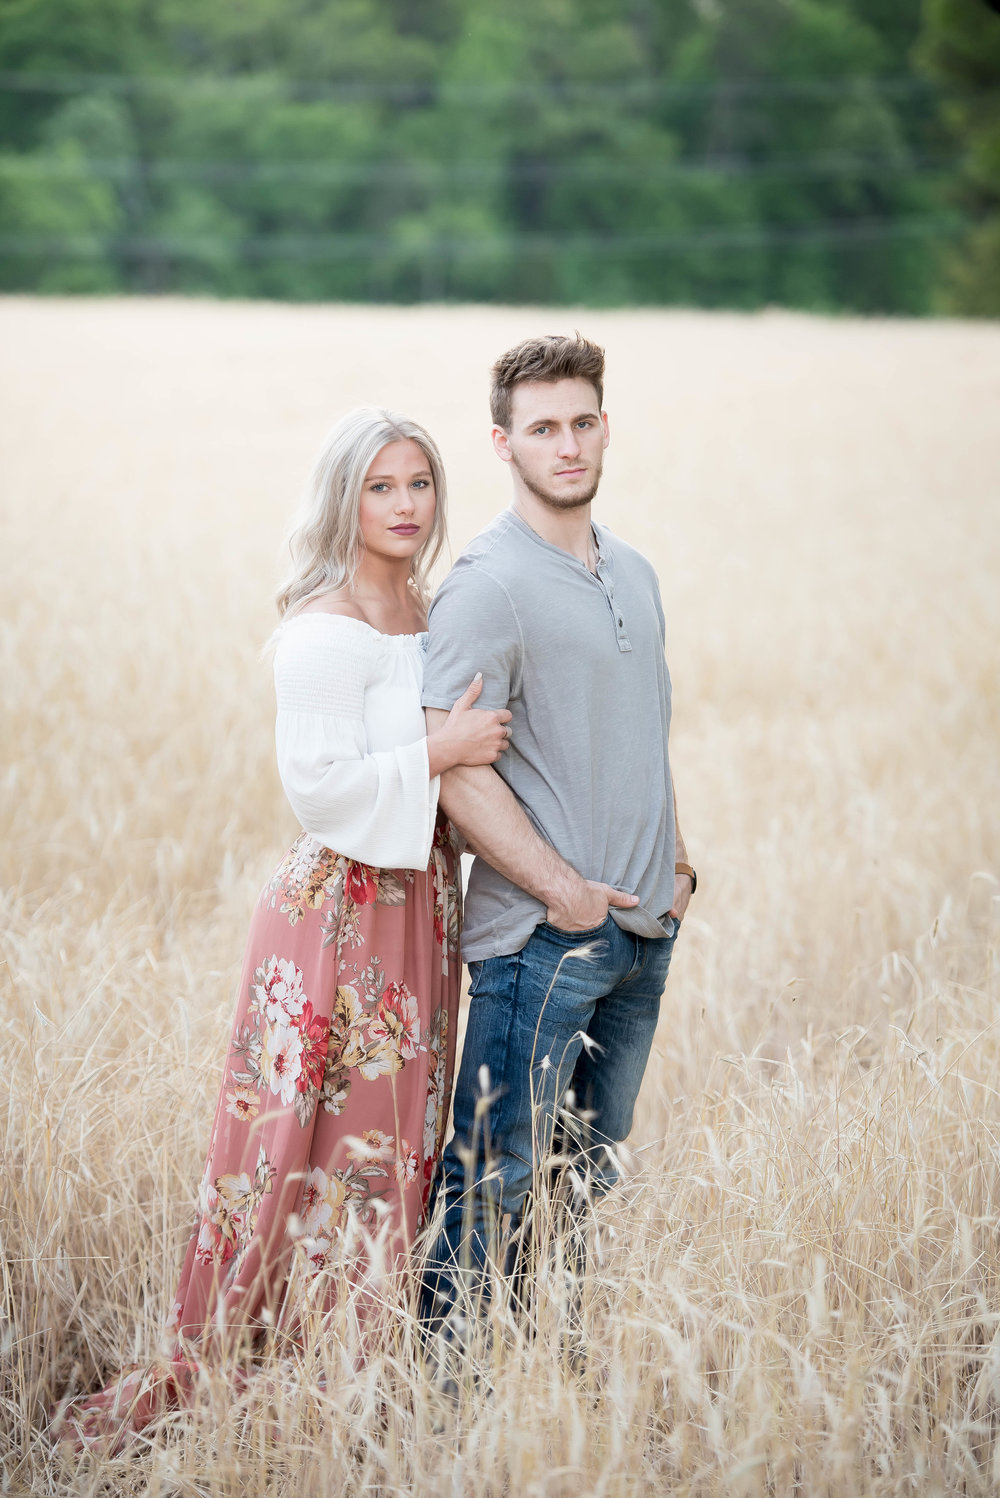 Couple Session - Fitness Couples - Tall Grass Field - Engagement Portrait Ideas - Engagement Session Ideas - Couple Session Ideas - Spring Picture Ideas-12.jpg